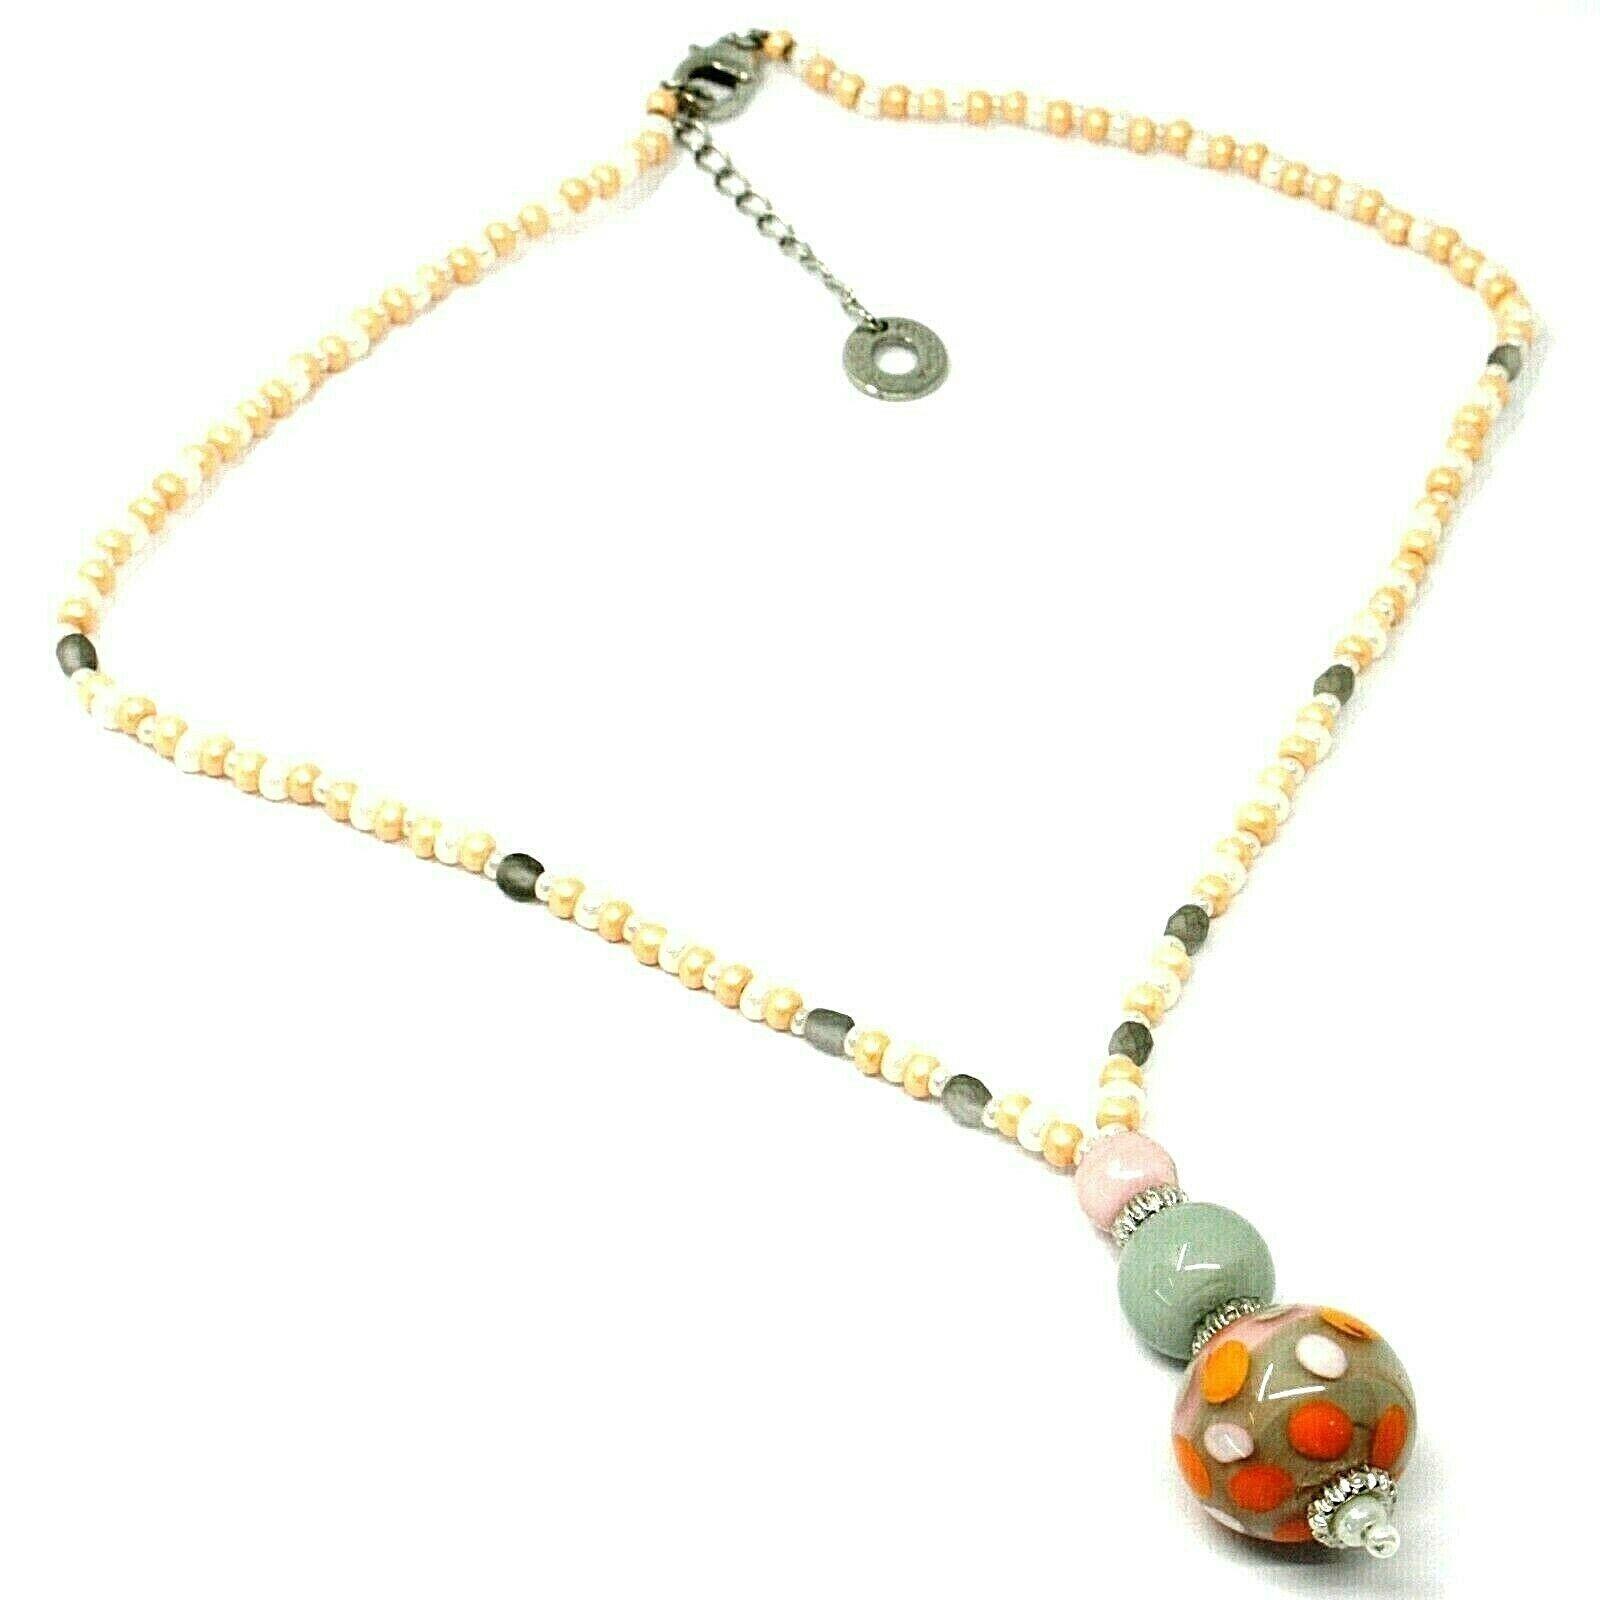 Necklace Antica Murrina Venezia, CO965A25 Pink Orange, Sphere Polka dot, Pendant